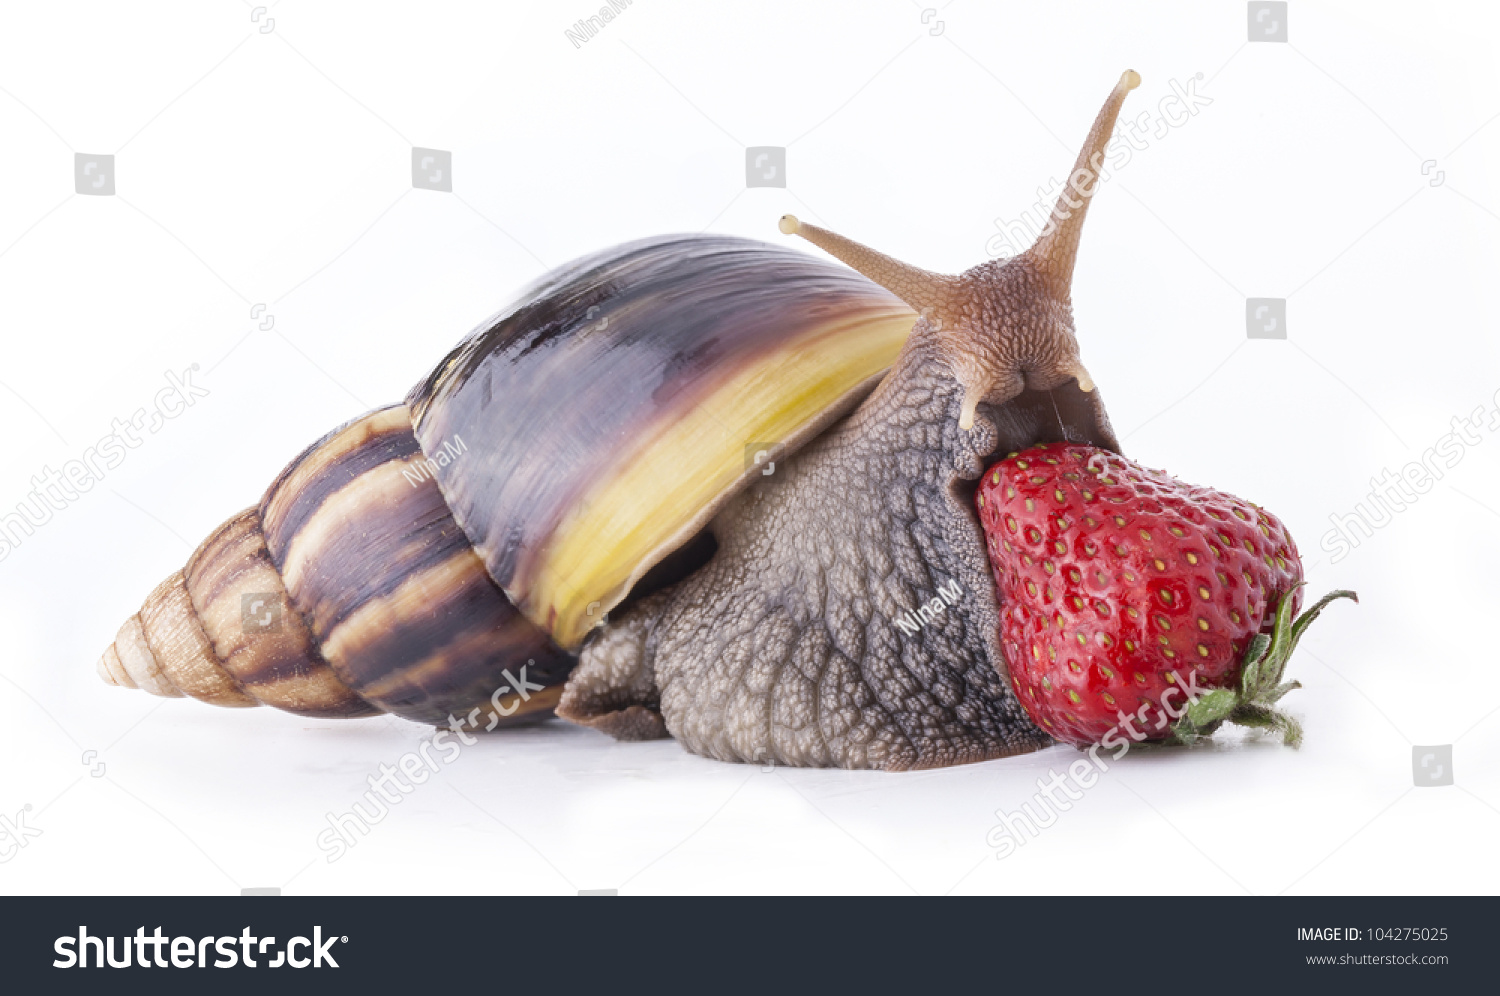 Giant african land snail eating - photo#30